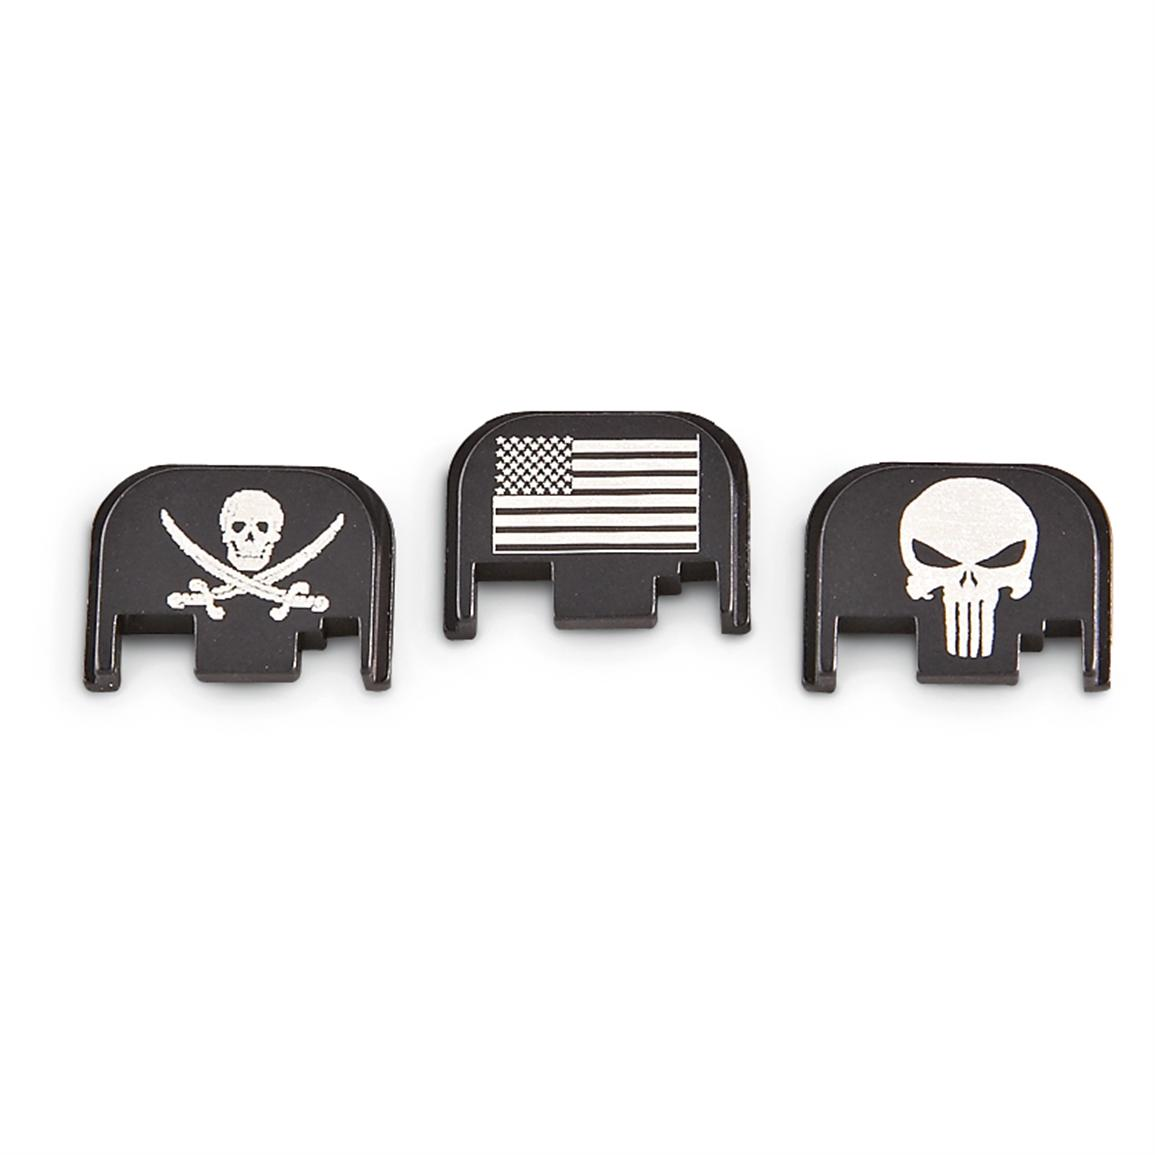 Engraved Glock Slide Plate; From Left to Right: Jolly Roger, American Flag, Punisher